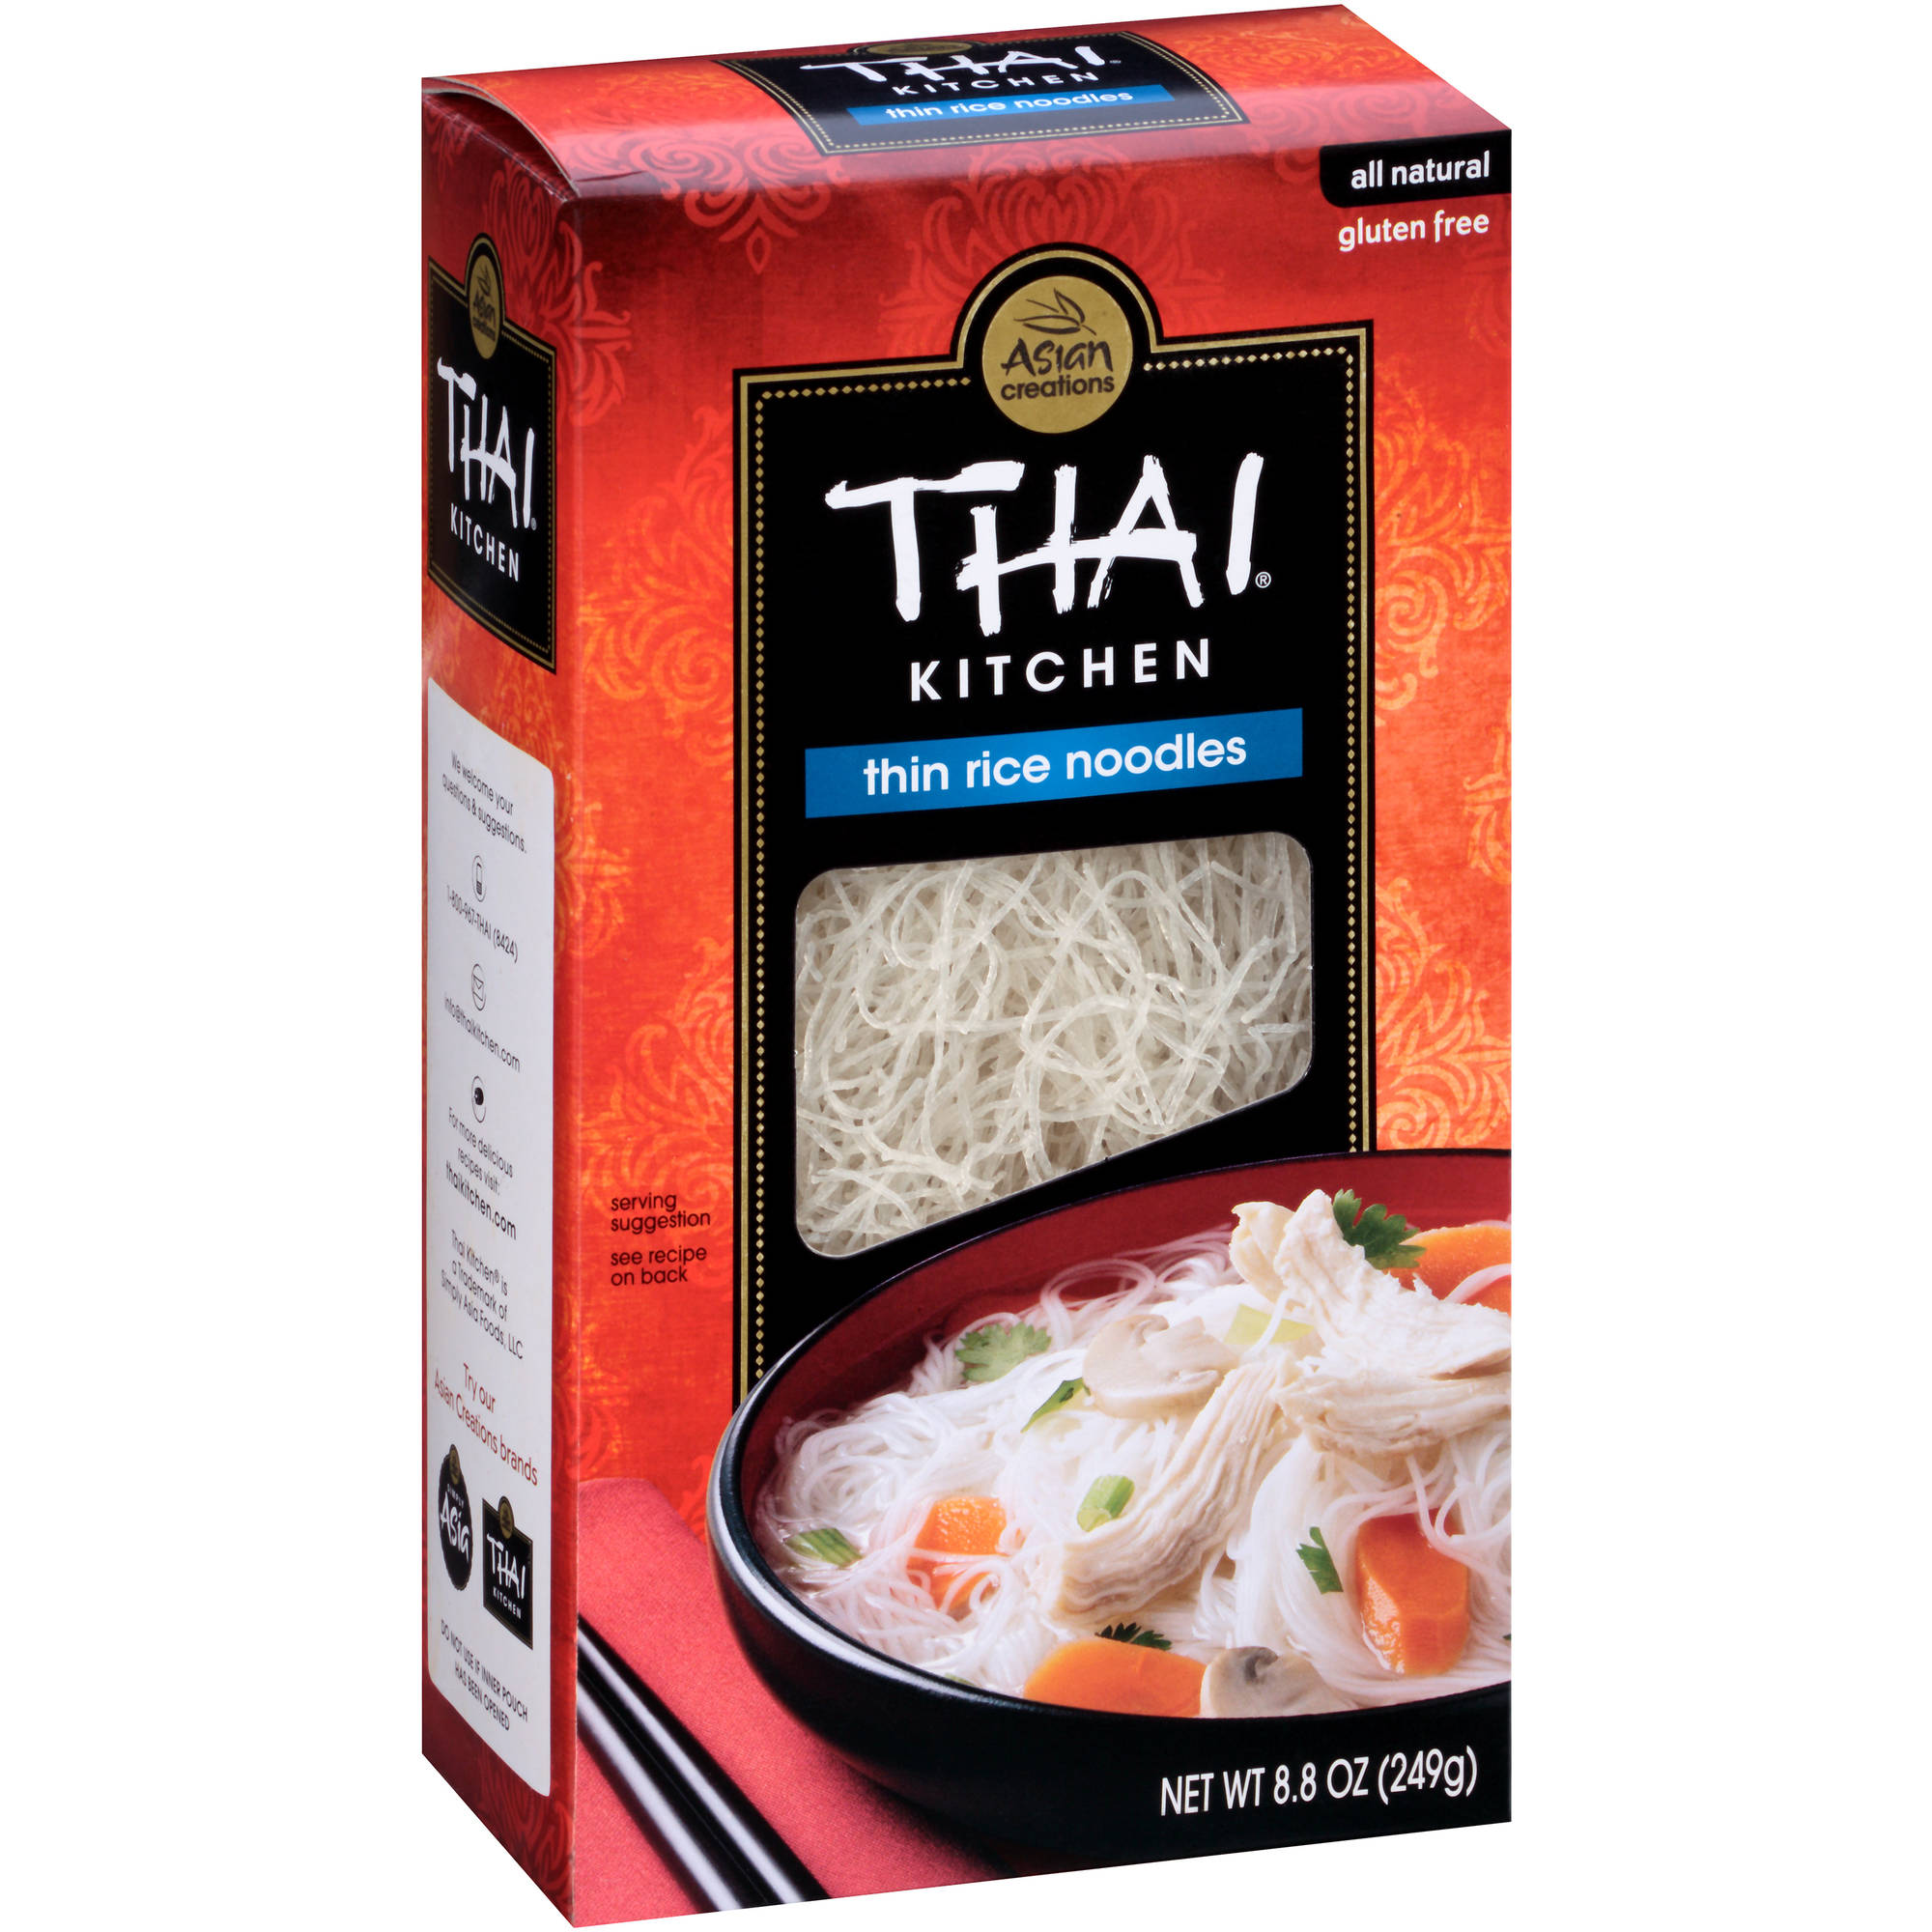 Thai Kitchen Thin Rice Noodles, 8.8 oz